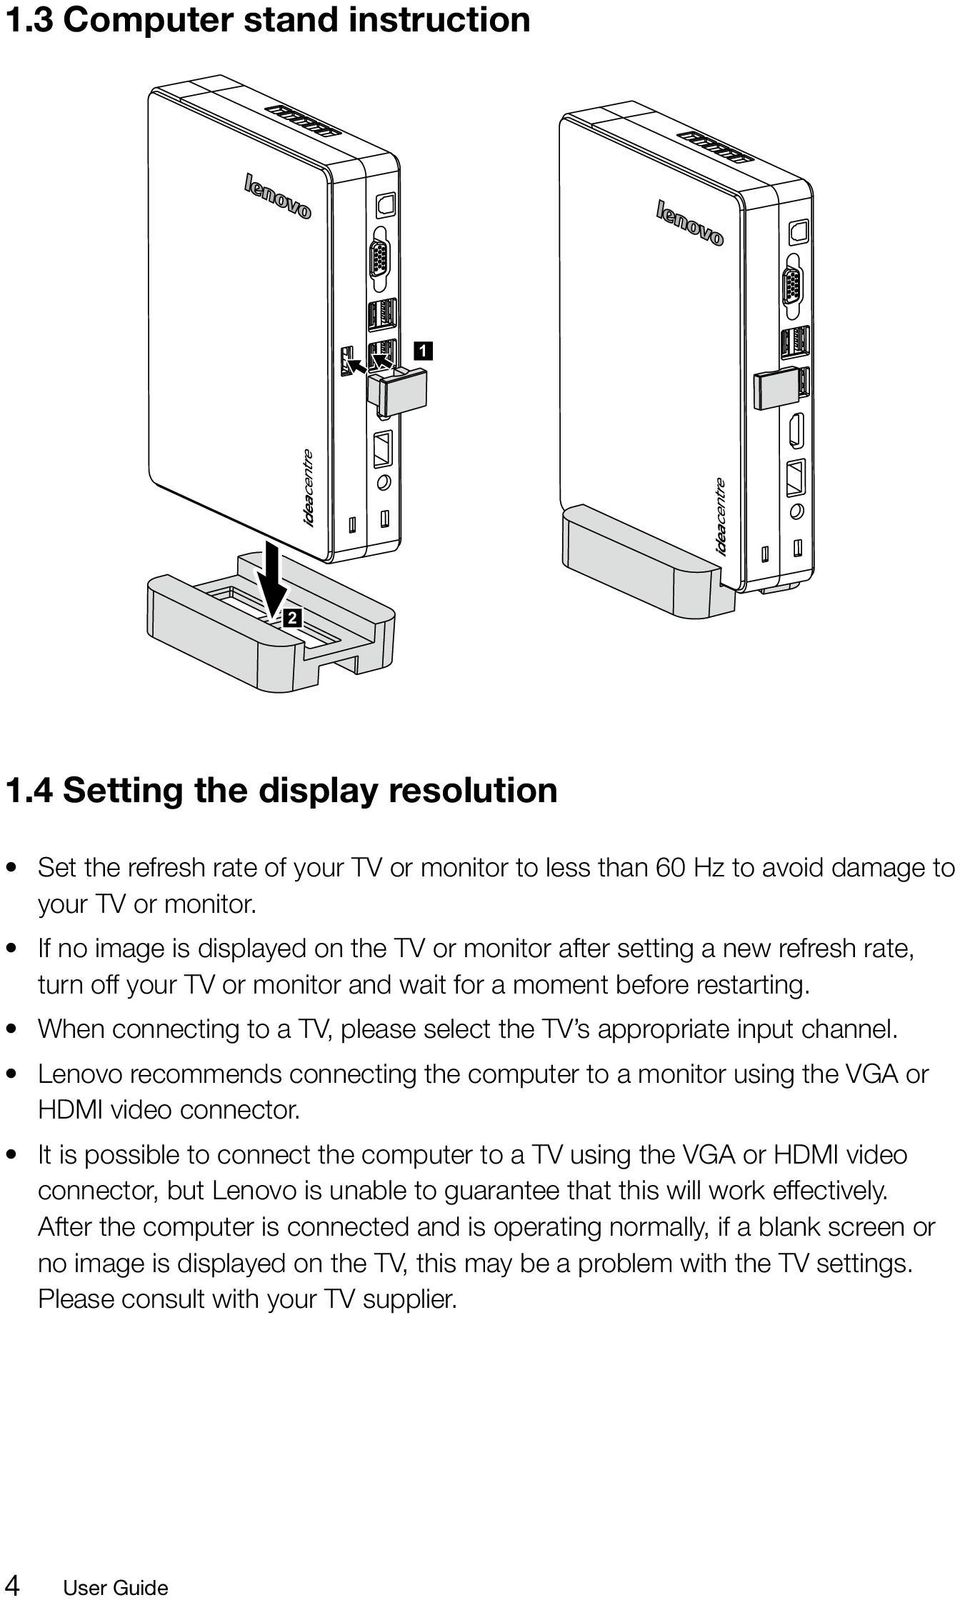 When connecting to a TV, please select the TV s appropriate input channel. Lenovo recommends connecting the computer to a monitor using the VGA or HDMI video connector.